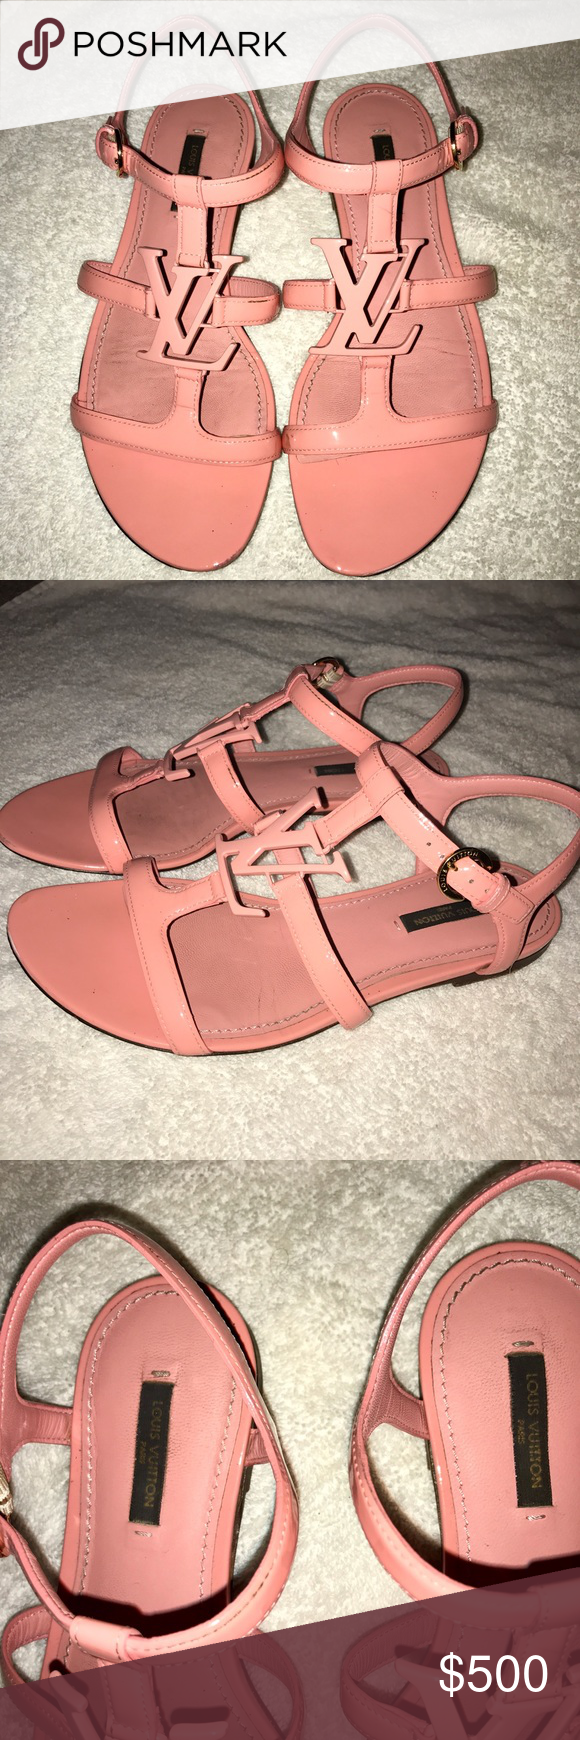 33fc42835fdb8 paradiso sandal in pink Louis Vuitton These beautiful pink sandals are a  regular size women s 8 few minor flaws as seen in the photos Louis Vuitton  Shoes ...